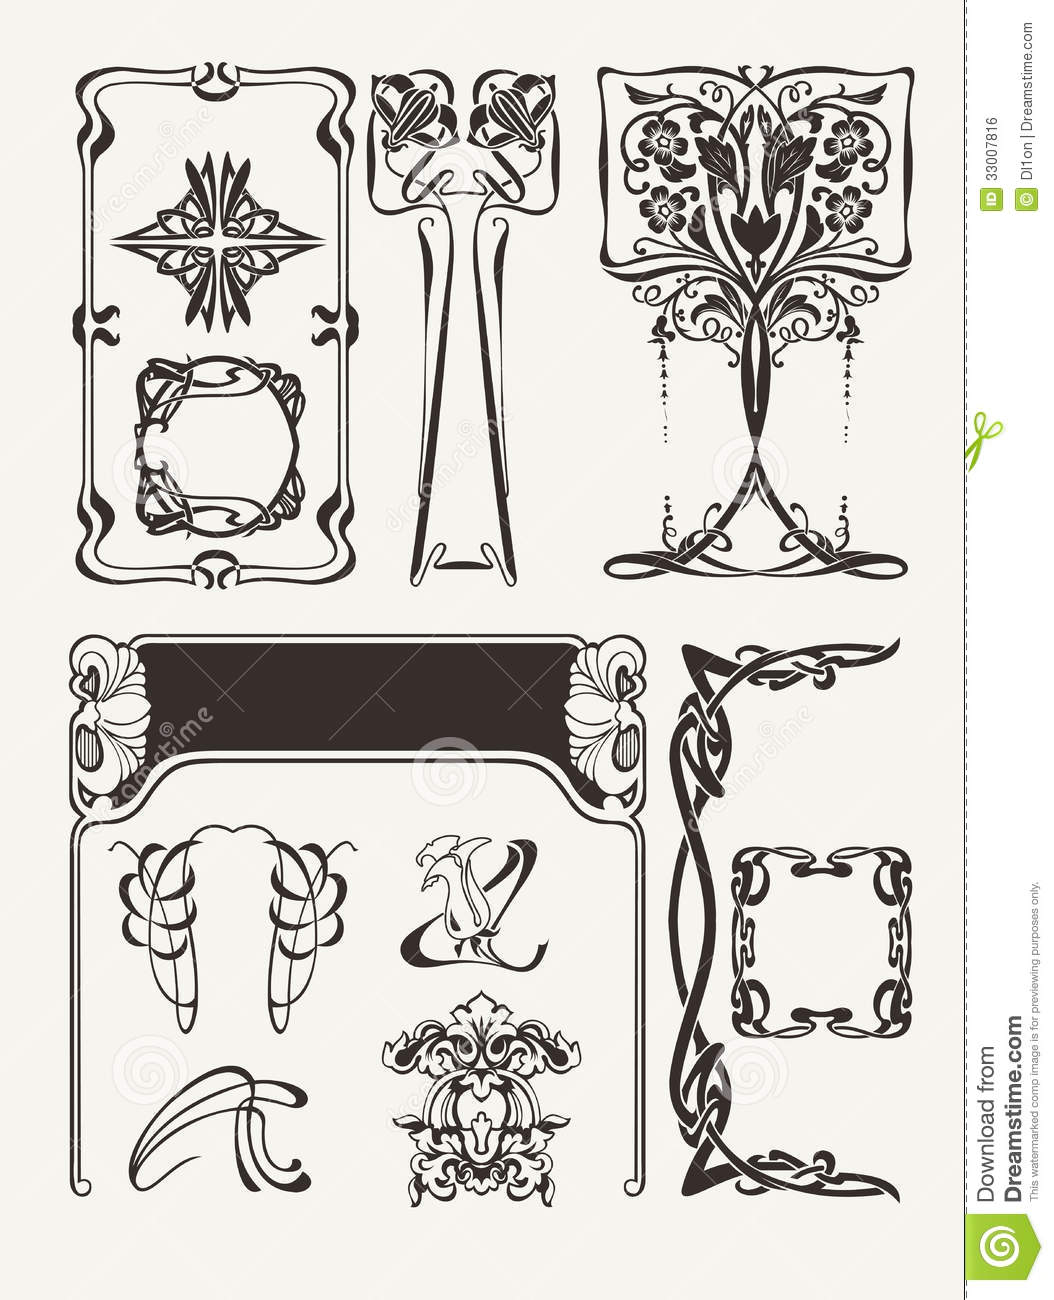 Set of vintage art deco design elements royalty free stock - Art deco design elements ...